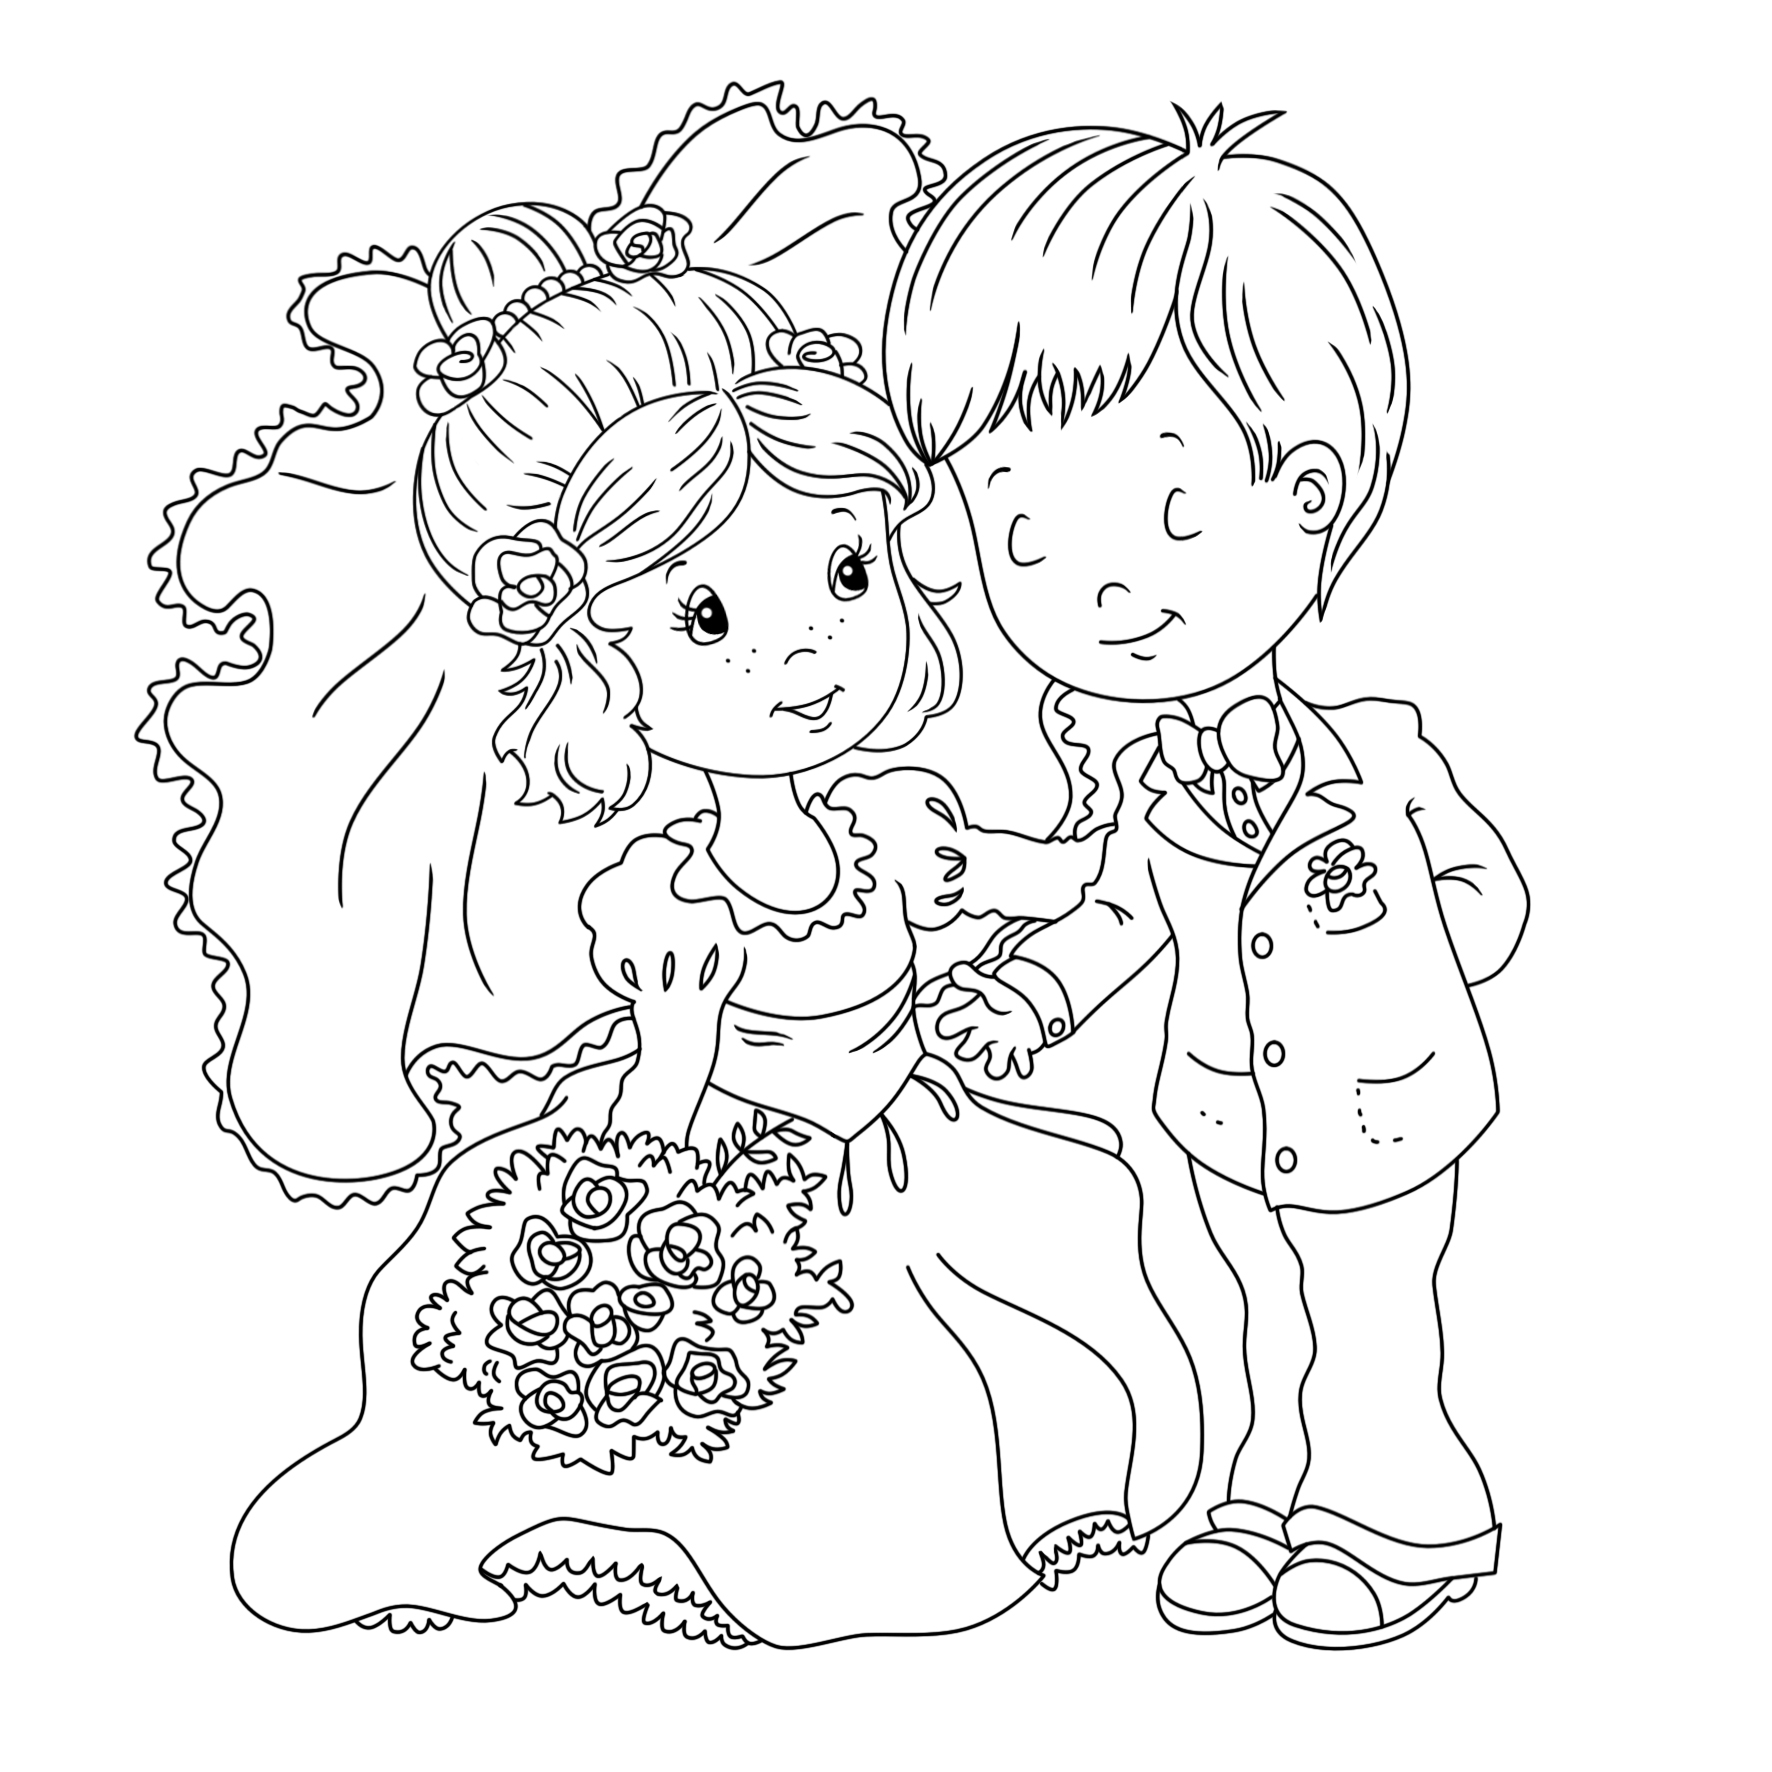 coloring wedding pages wedding coloring pages best coloring pages for kids wedding coloring pages